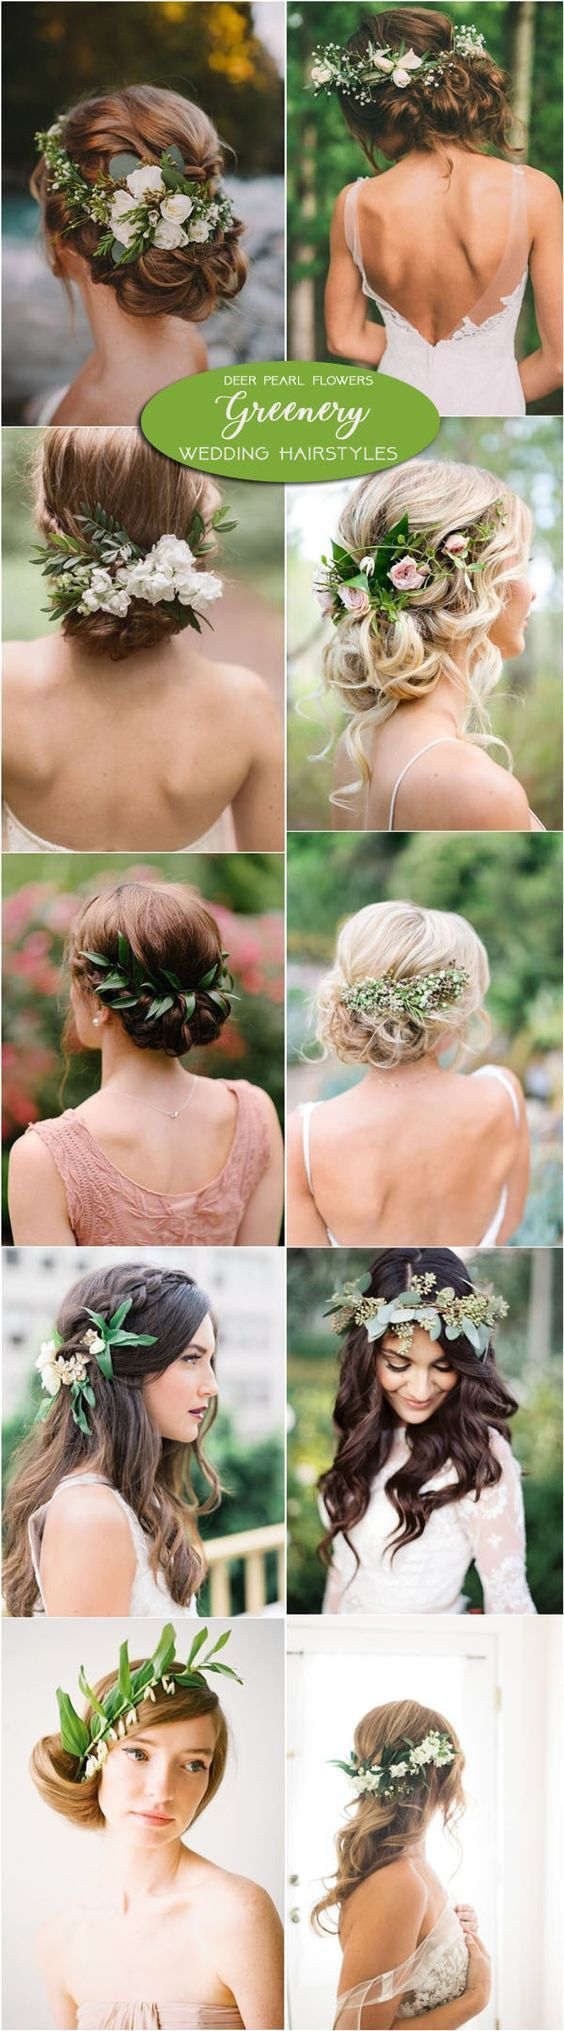 Greenery wedding hairstyles and wedding updos with green flowers / www.deerpearl...